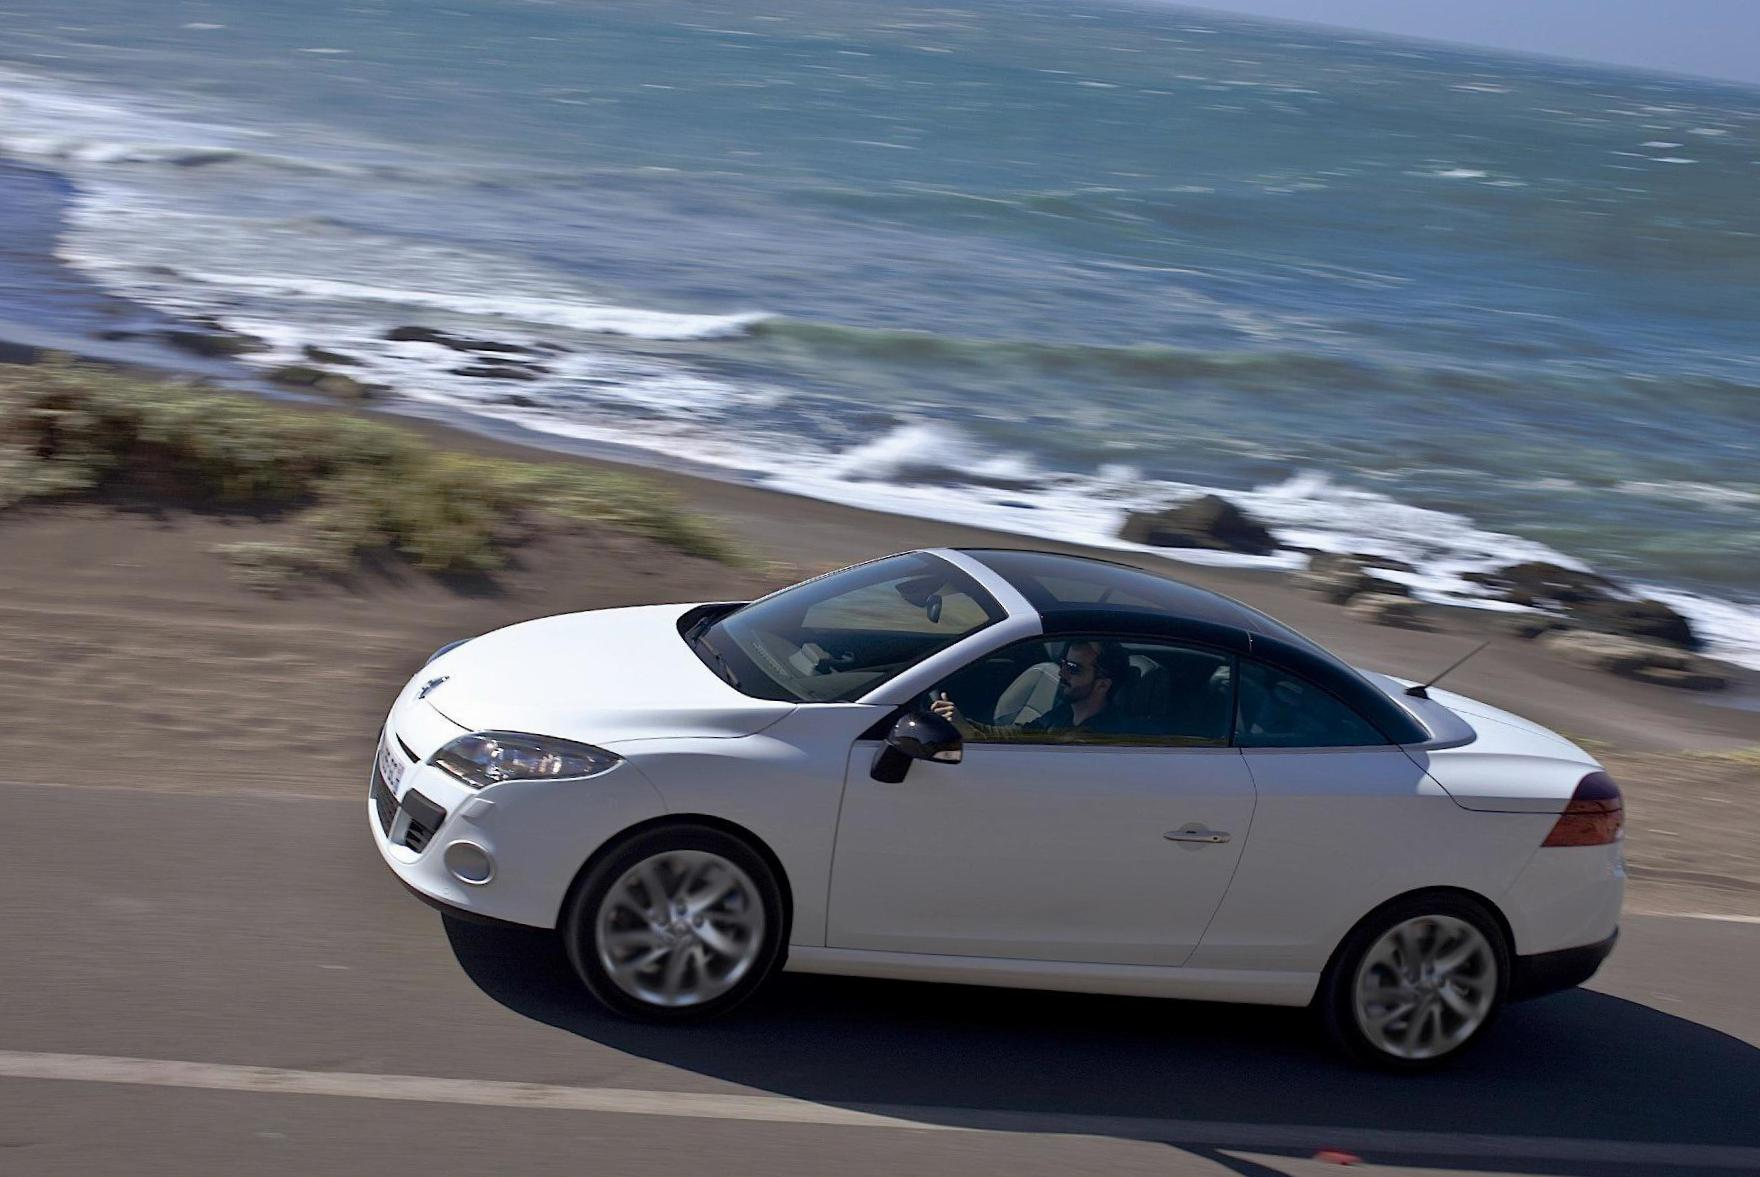 Renault Megane Coupe usa hatchback